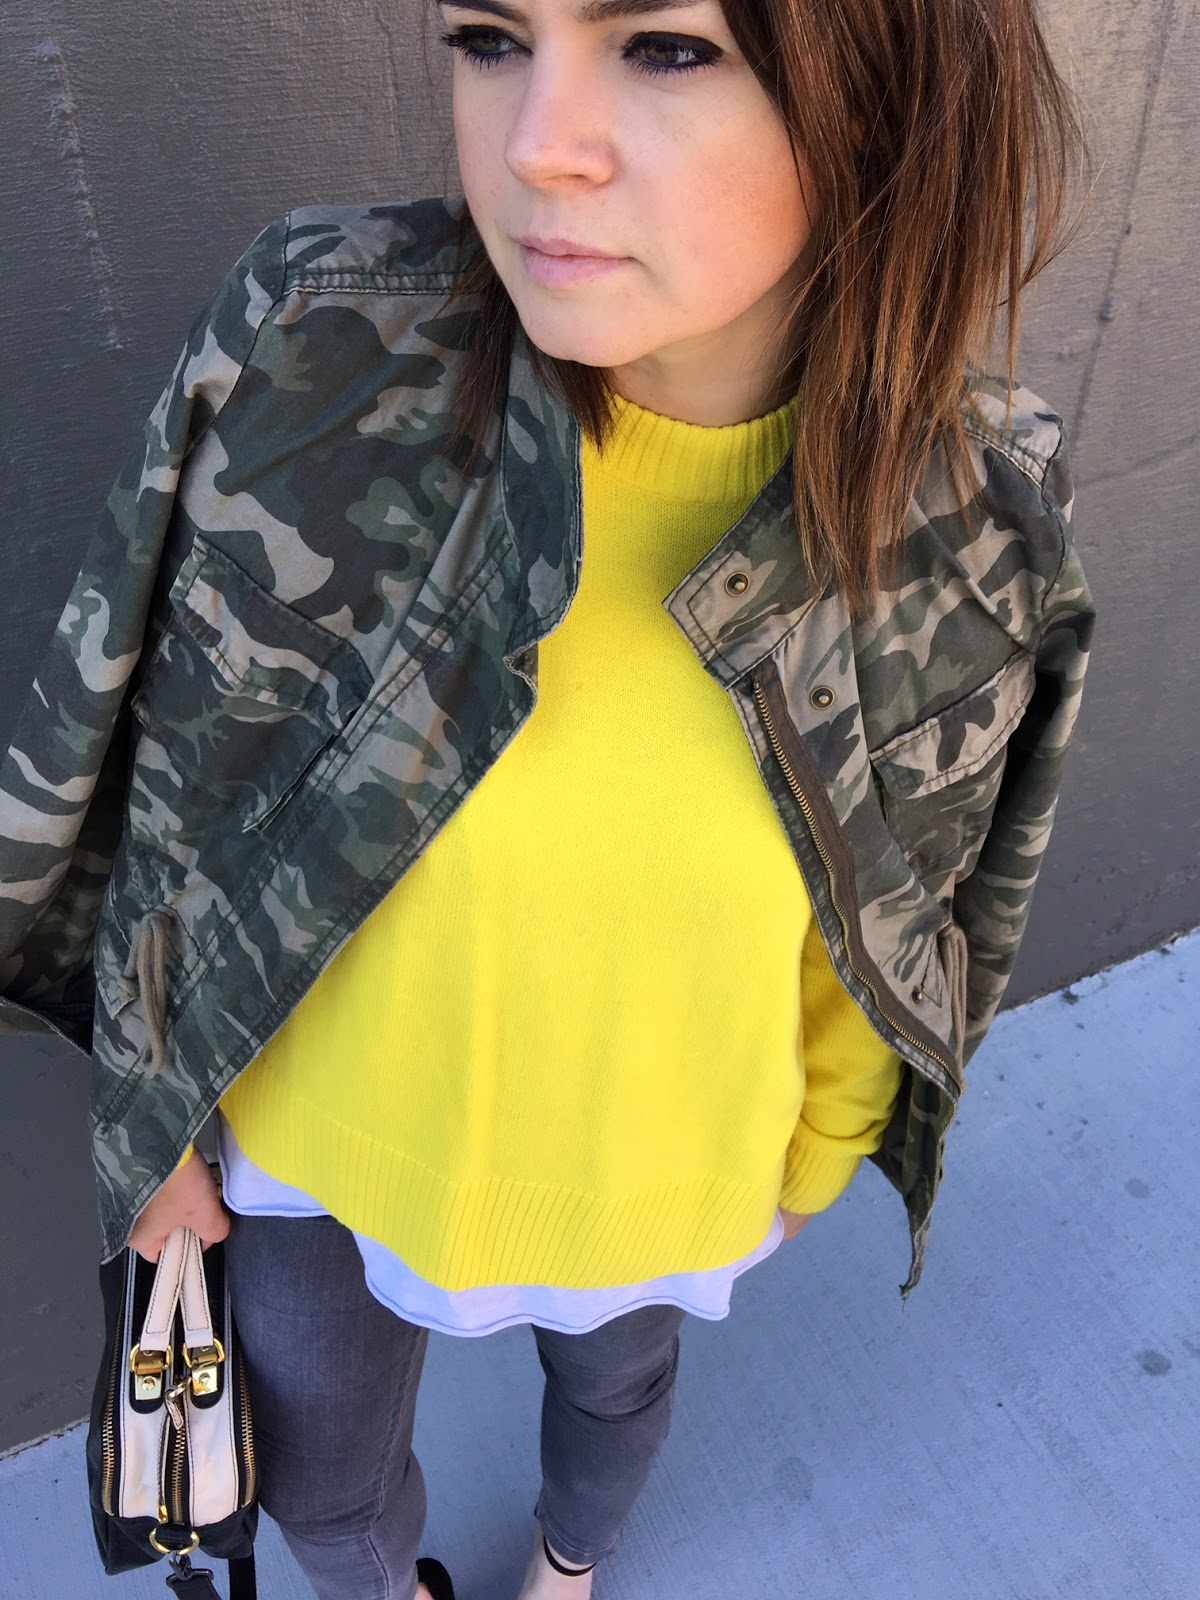 How to wear a yellow sweater with a camo jacket!